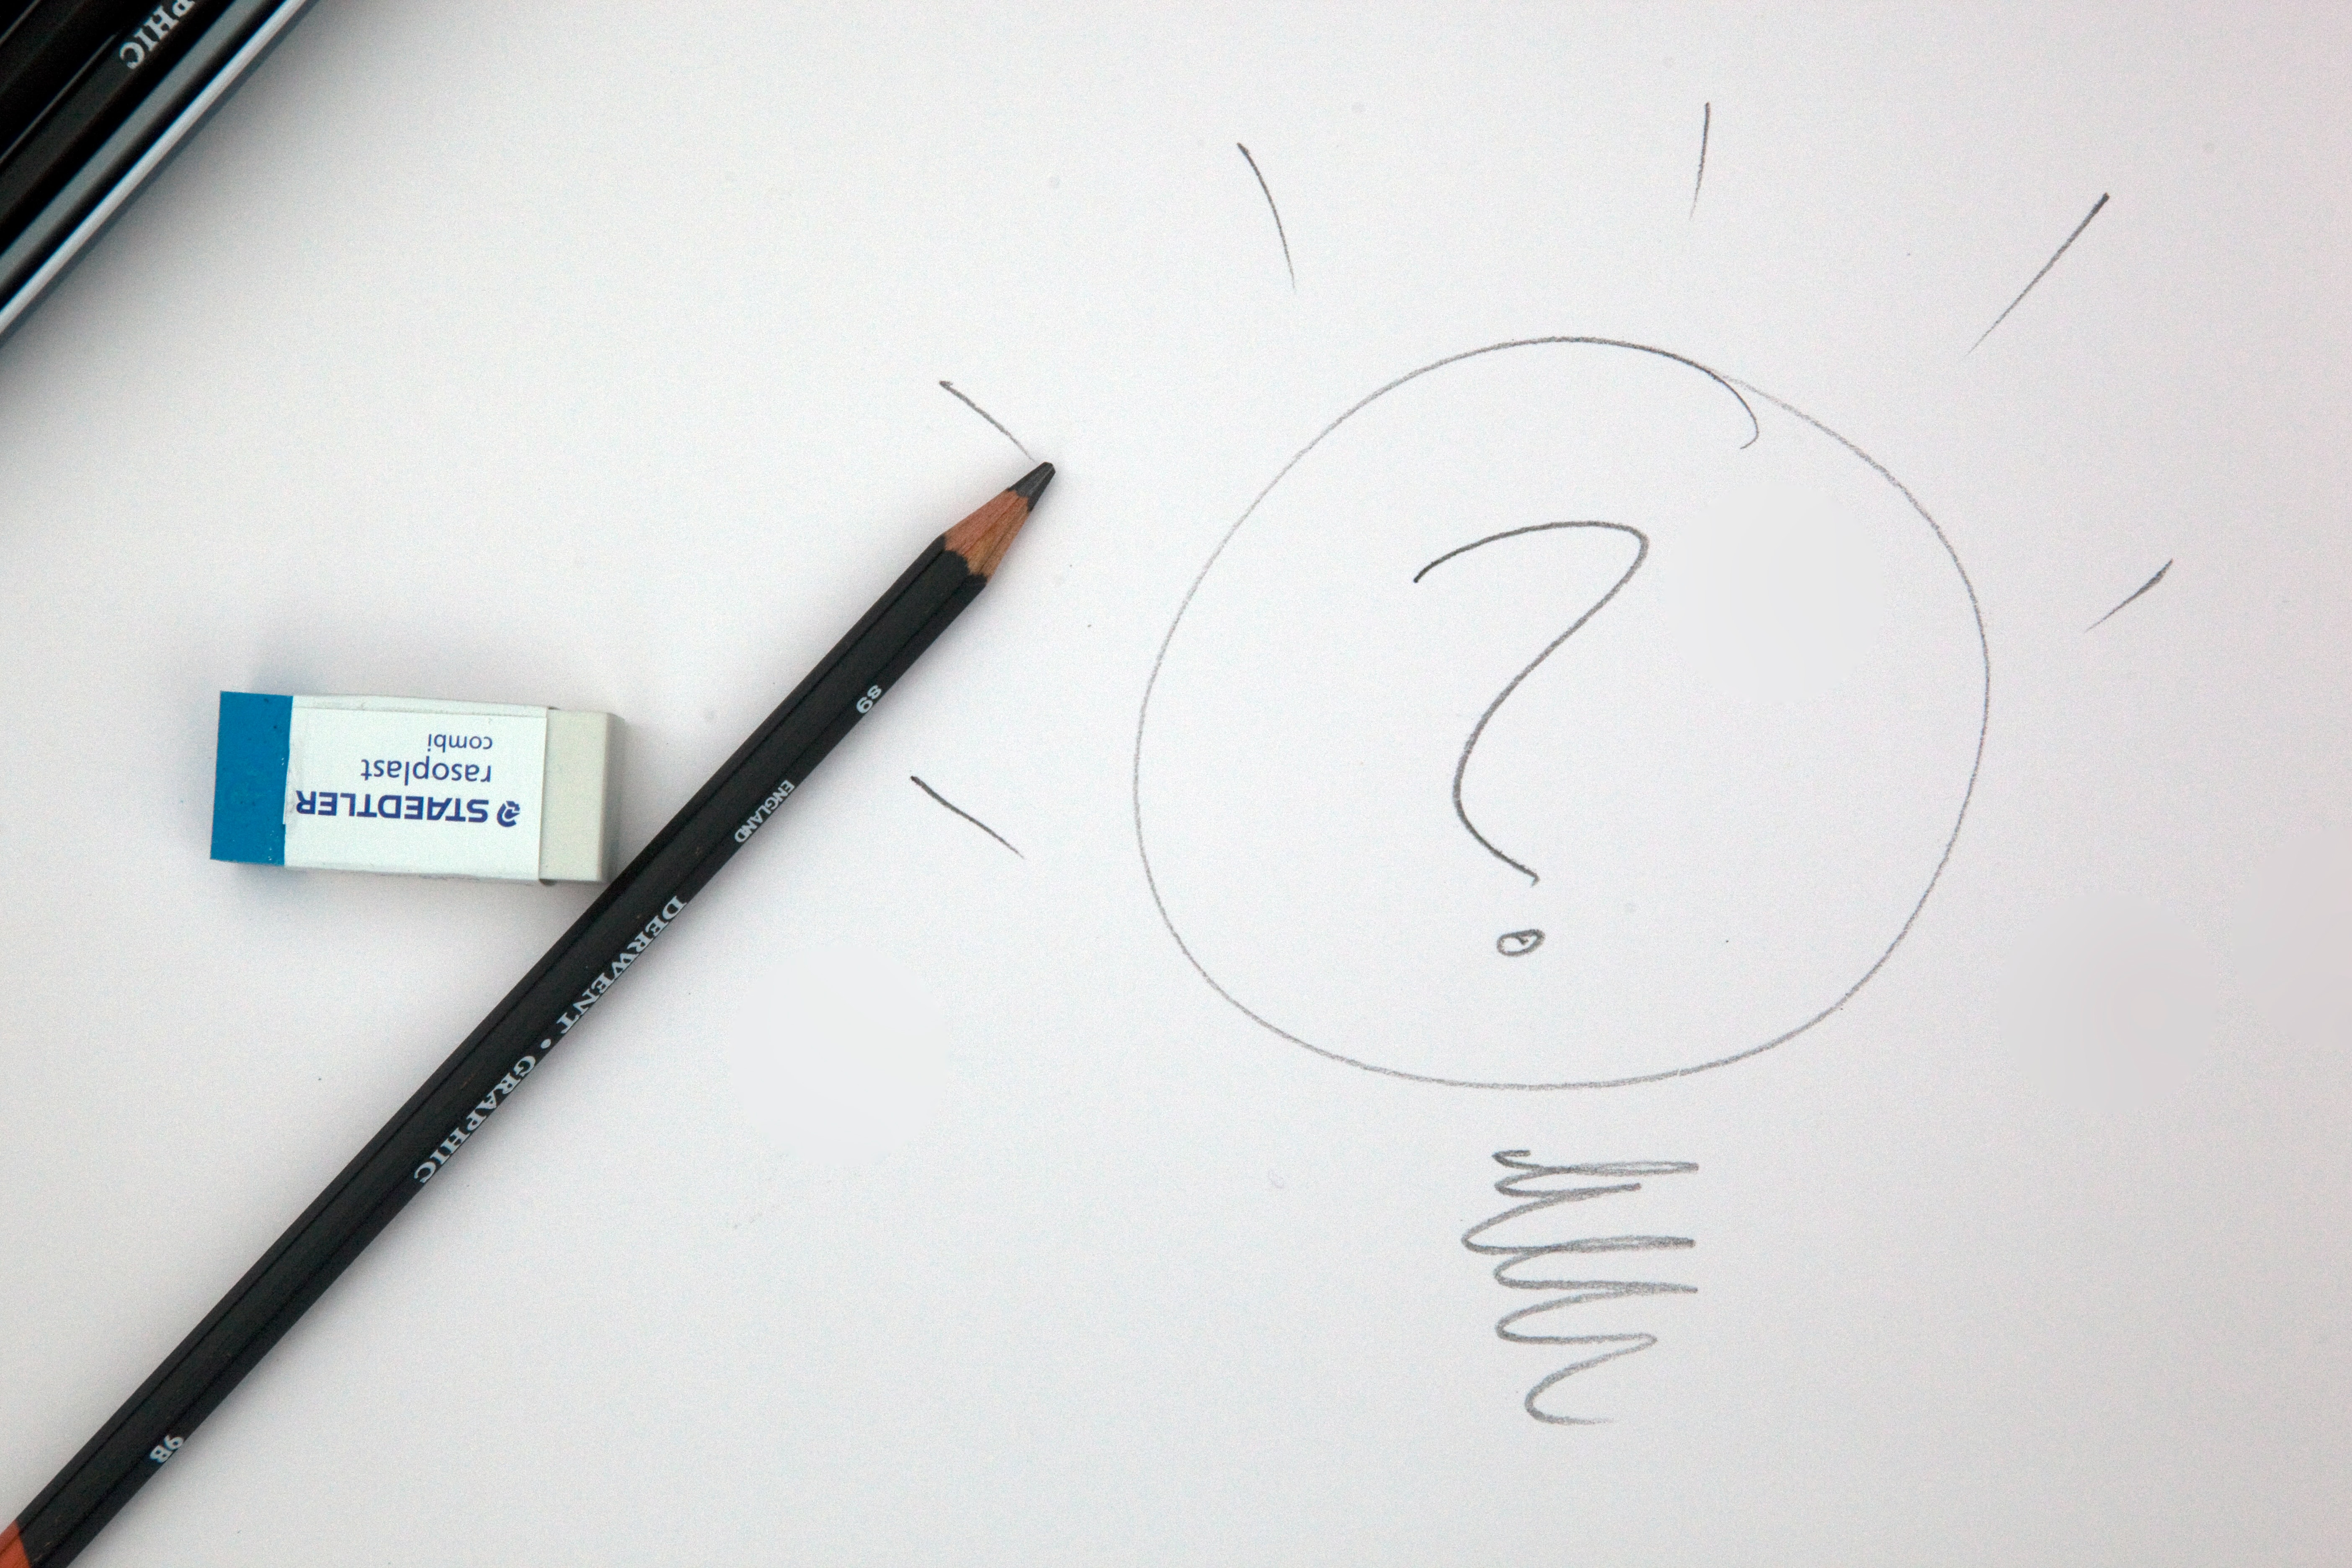 pencil and eraser on a piece of paper with a lightbulb and question mark written